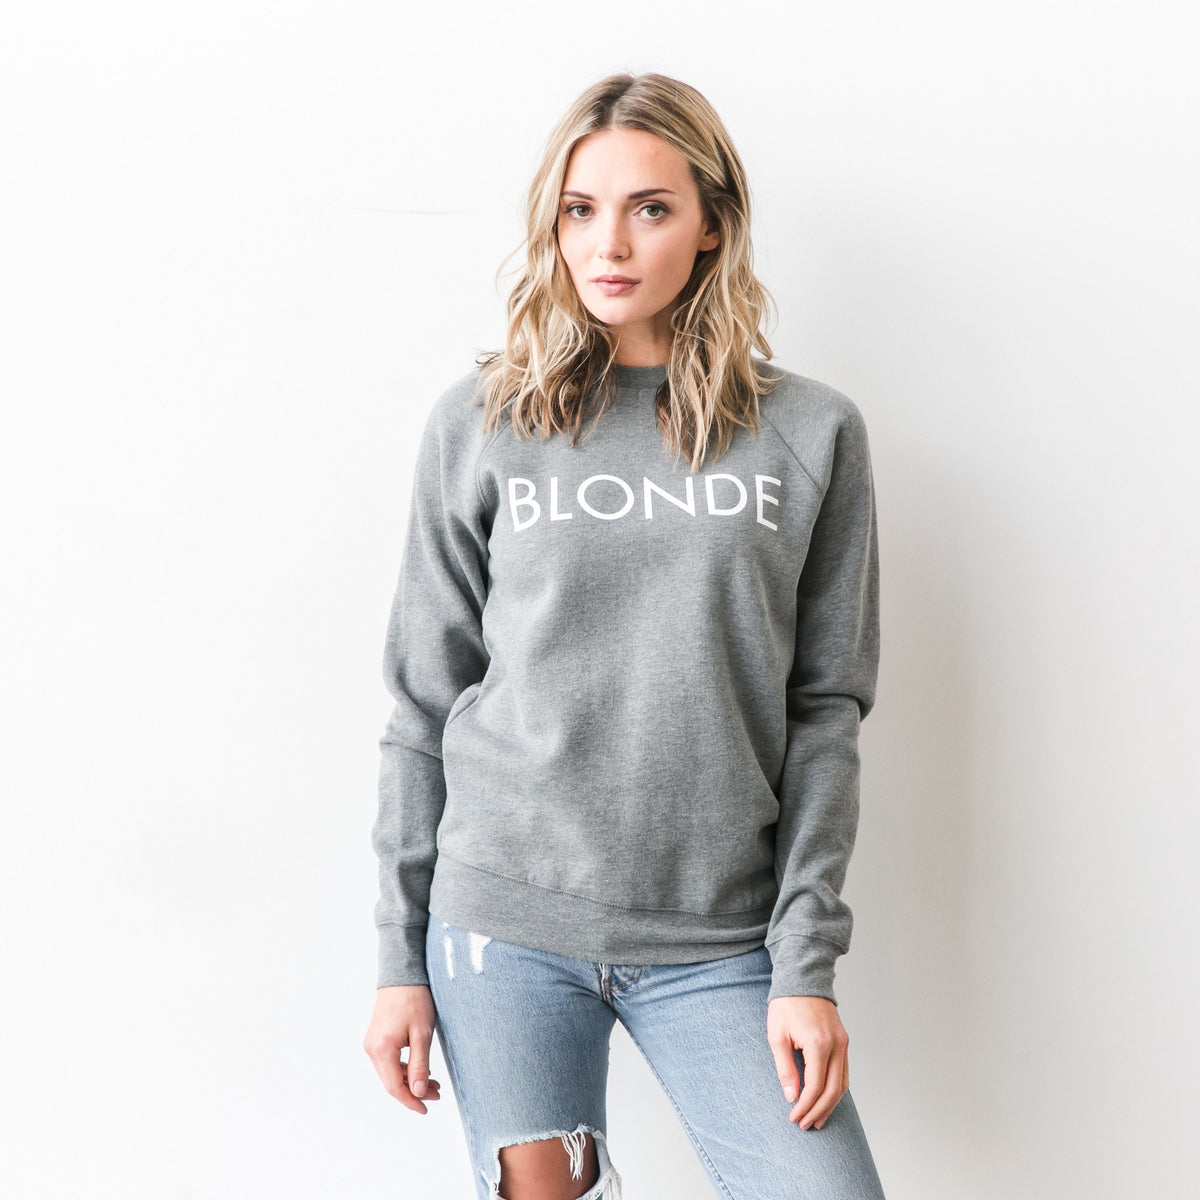 BRUNETTE THE LABEL- Blonde Sweatshirt